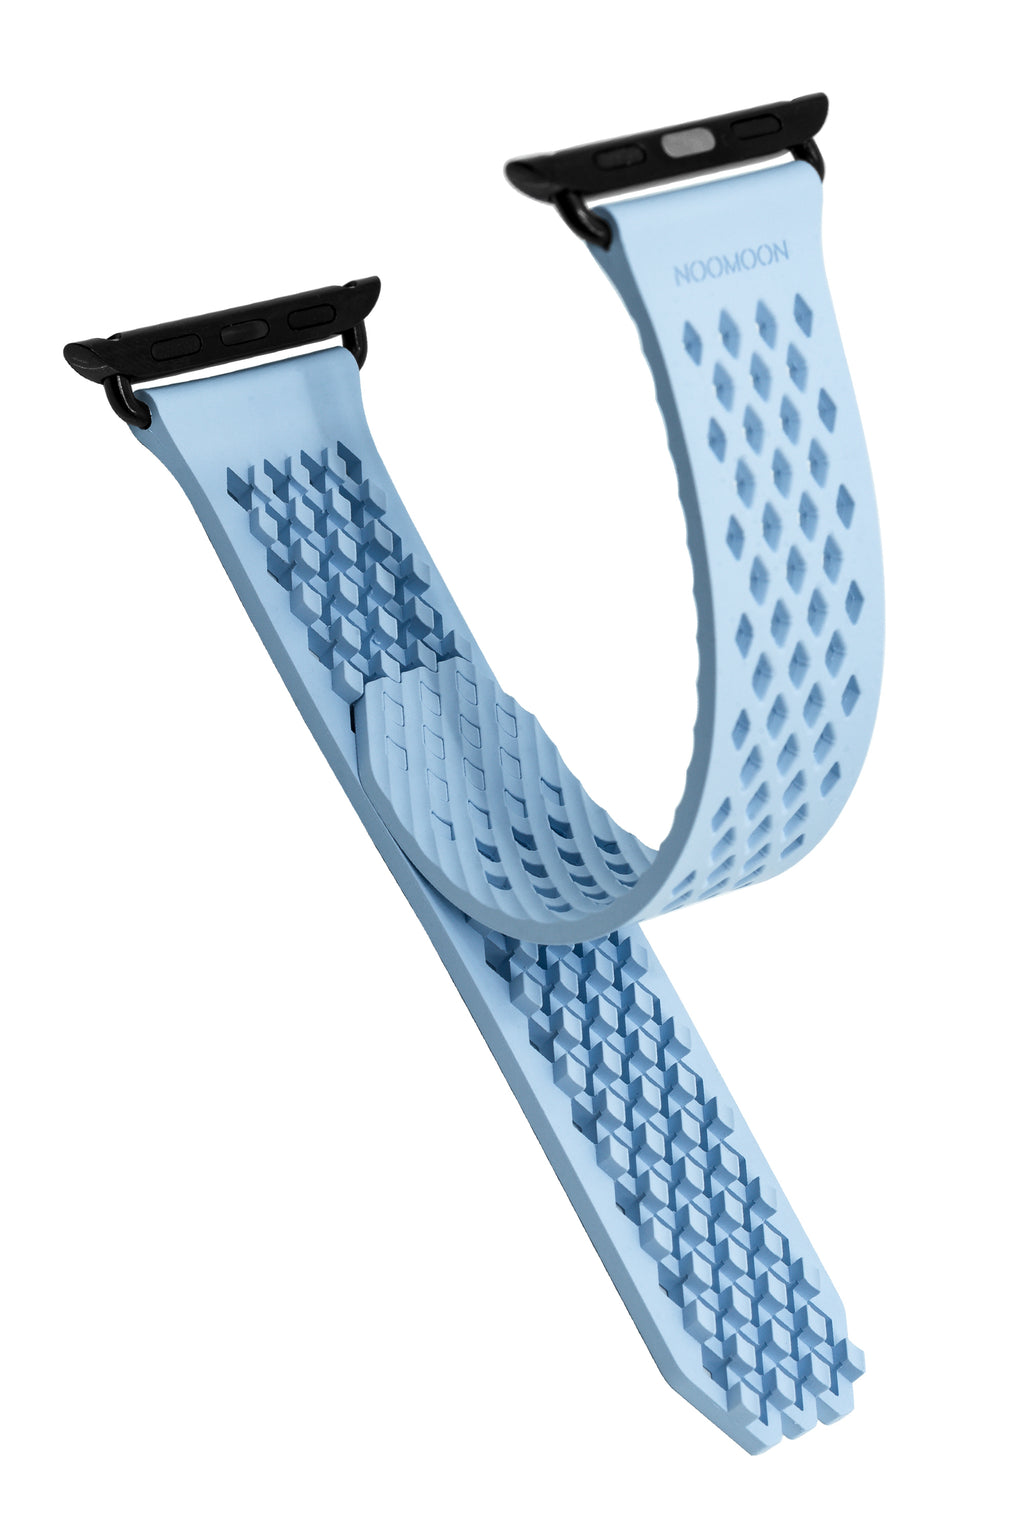 Noomoon LABB Interlocking Watch Strap for Apple Watch in LIGHT BLUE with BLACK Hardware